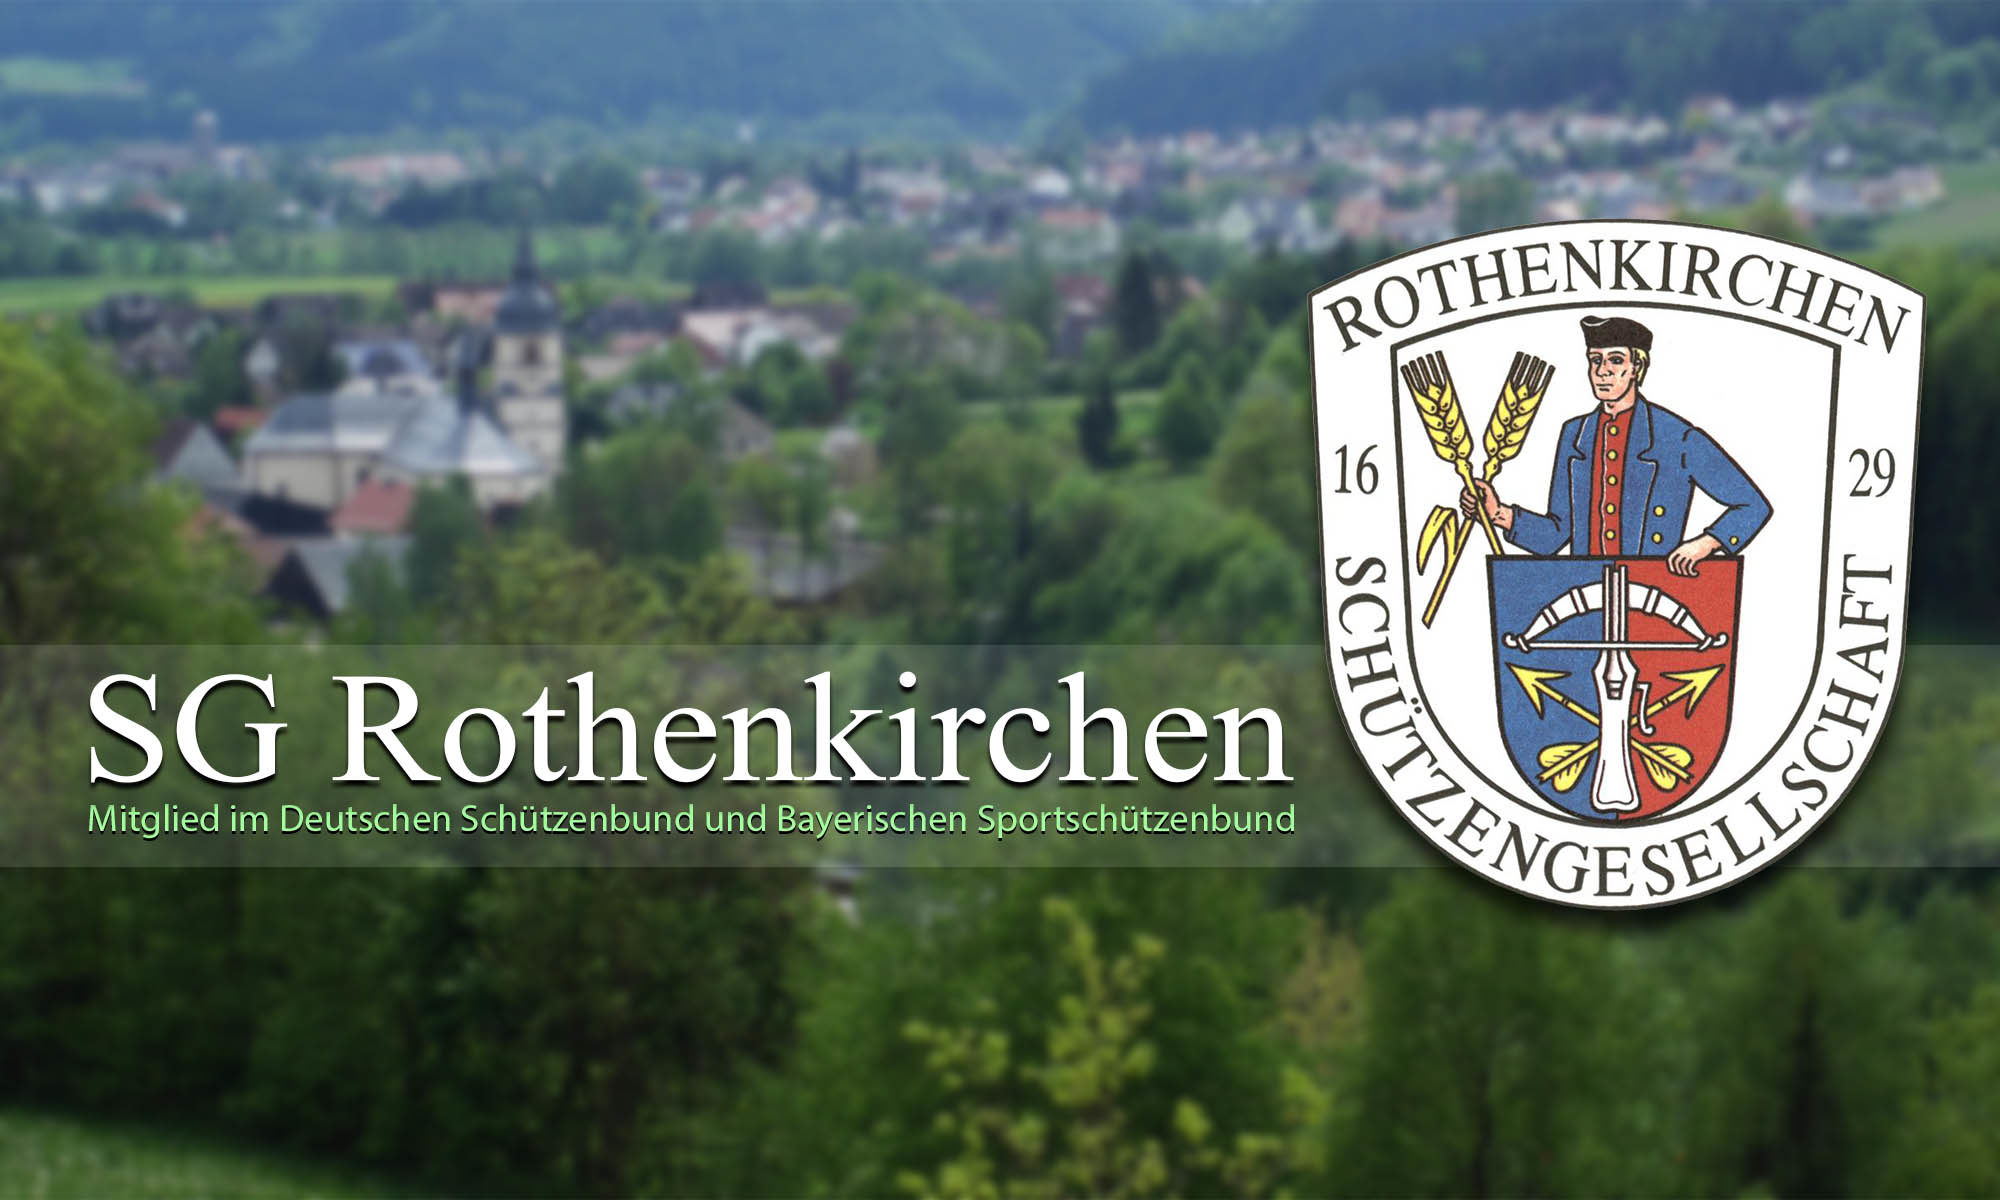 SG 1629 Rothenkirchen e.V.